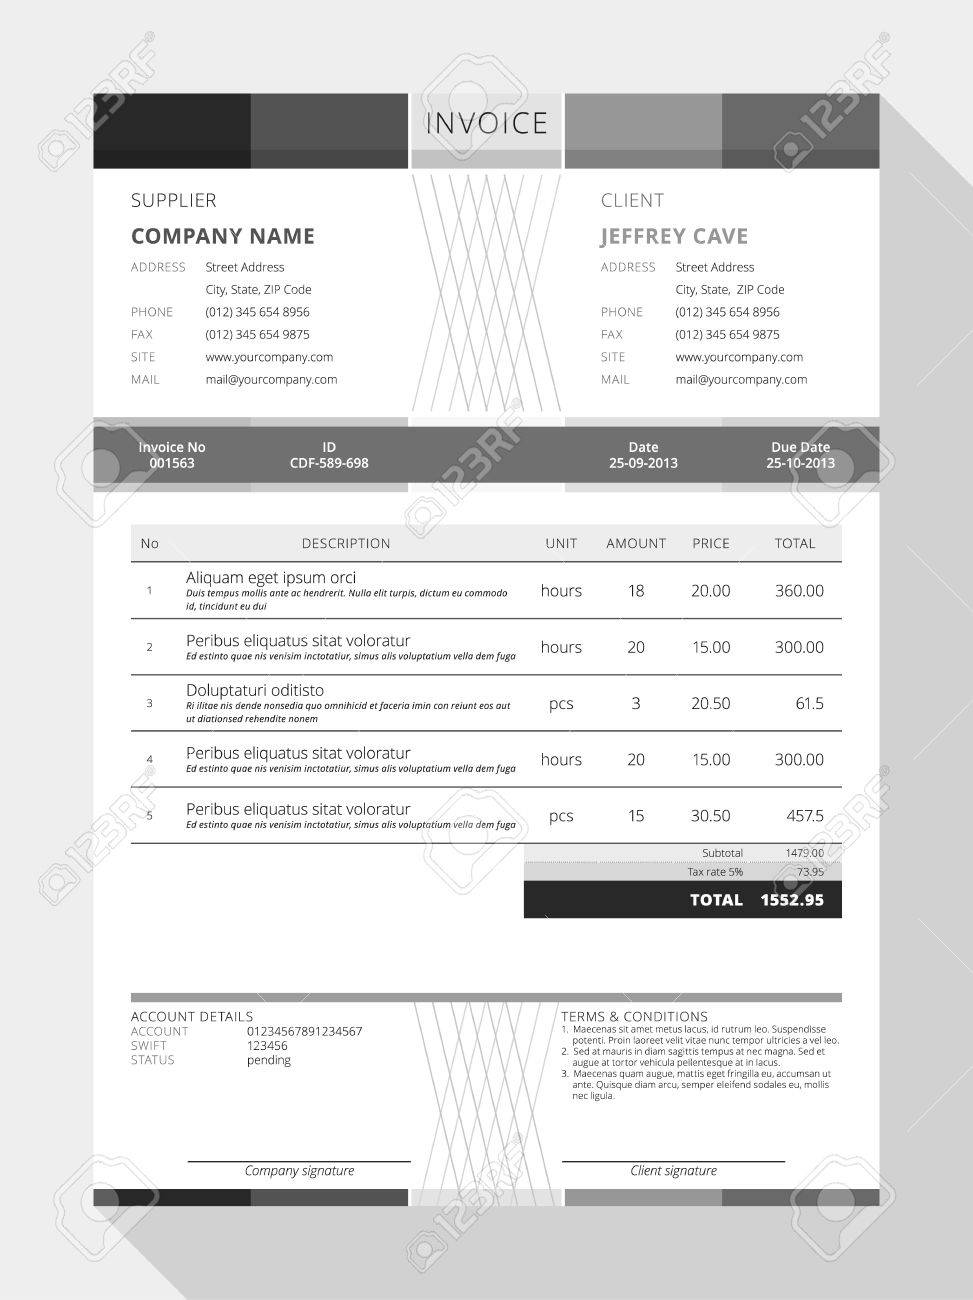 Reliefworkersus  Unusual Design An Invoice  Professional Graphic Design Invoice  With Outstanding Vector Customizable Invoice Form Template Design Vector   Design An Invoice With Comely Receipt Taxi Also Organise Receipts In Addition Post Office Receipt Number And Scan Bills And Receipts As Well As Written Receipt Template Additionally Receipt For Shepards Pie From Happytomco With Reliefworkersus  Outstanding Design An Invoice  Professional Graphic Design Invoice  With Comely Vector Customizable Invoice Form Template Design Vector   Design An Invoice And Unusual Receipt Taxi Also Organise Receipts In Addition Post Office Receipt Number From Happytomco